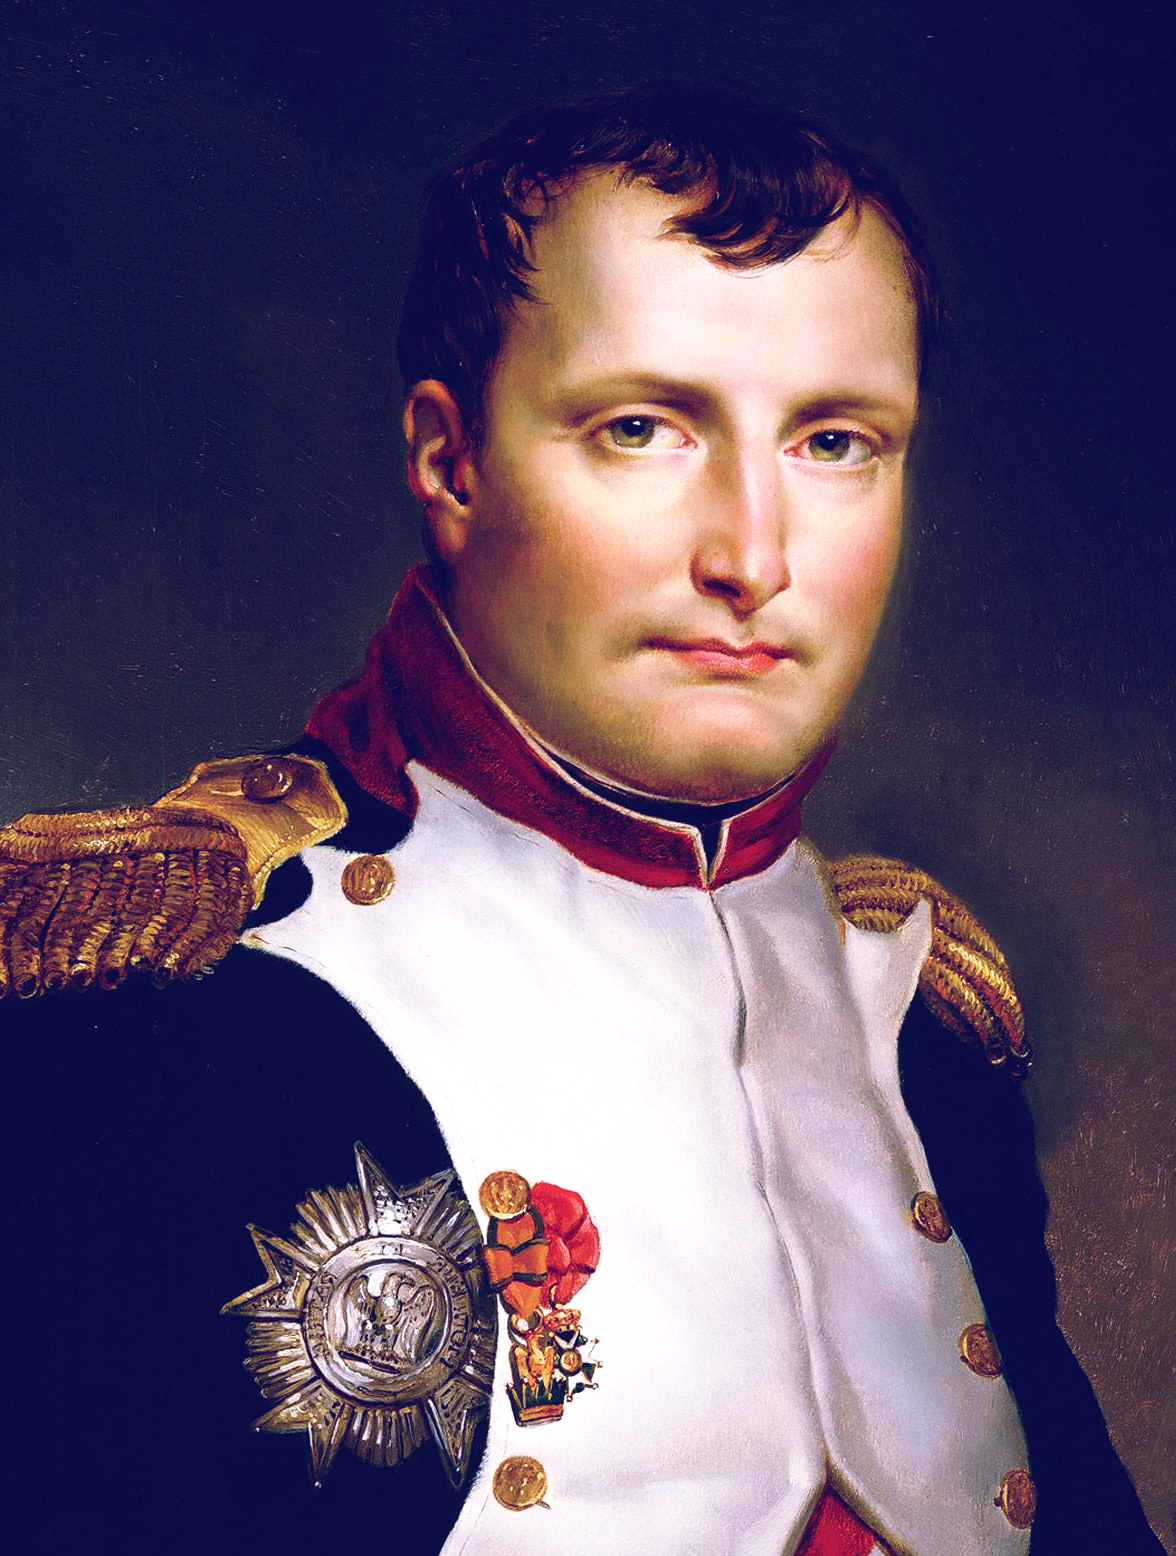 a biography of the life and expeditions of napoleon The man and the myth napoleon and joesphine politics in napoleon's times  napoleon at war campaings and battles napoleon's tactics the soldier's life   the egyptian expedition is probably the craziest expedition in the history of.